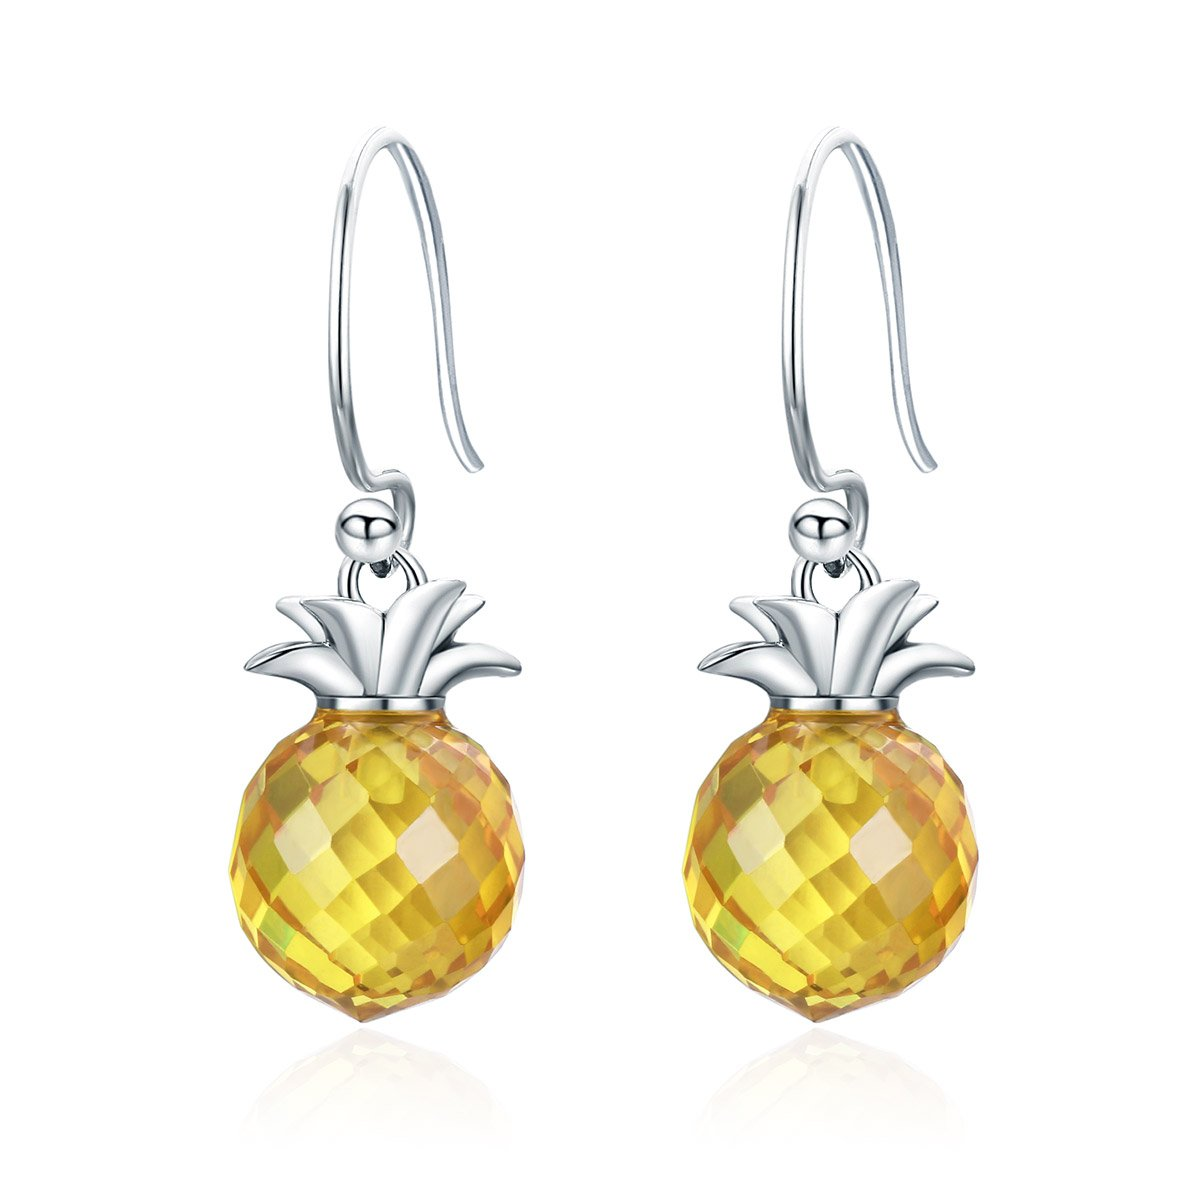 Everbling Pineapple Crystal Hanging 925 Sterling Silver Dangle Earrings